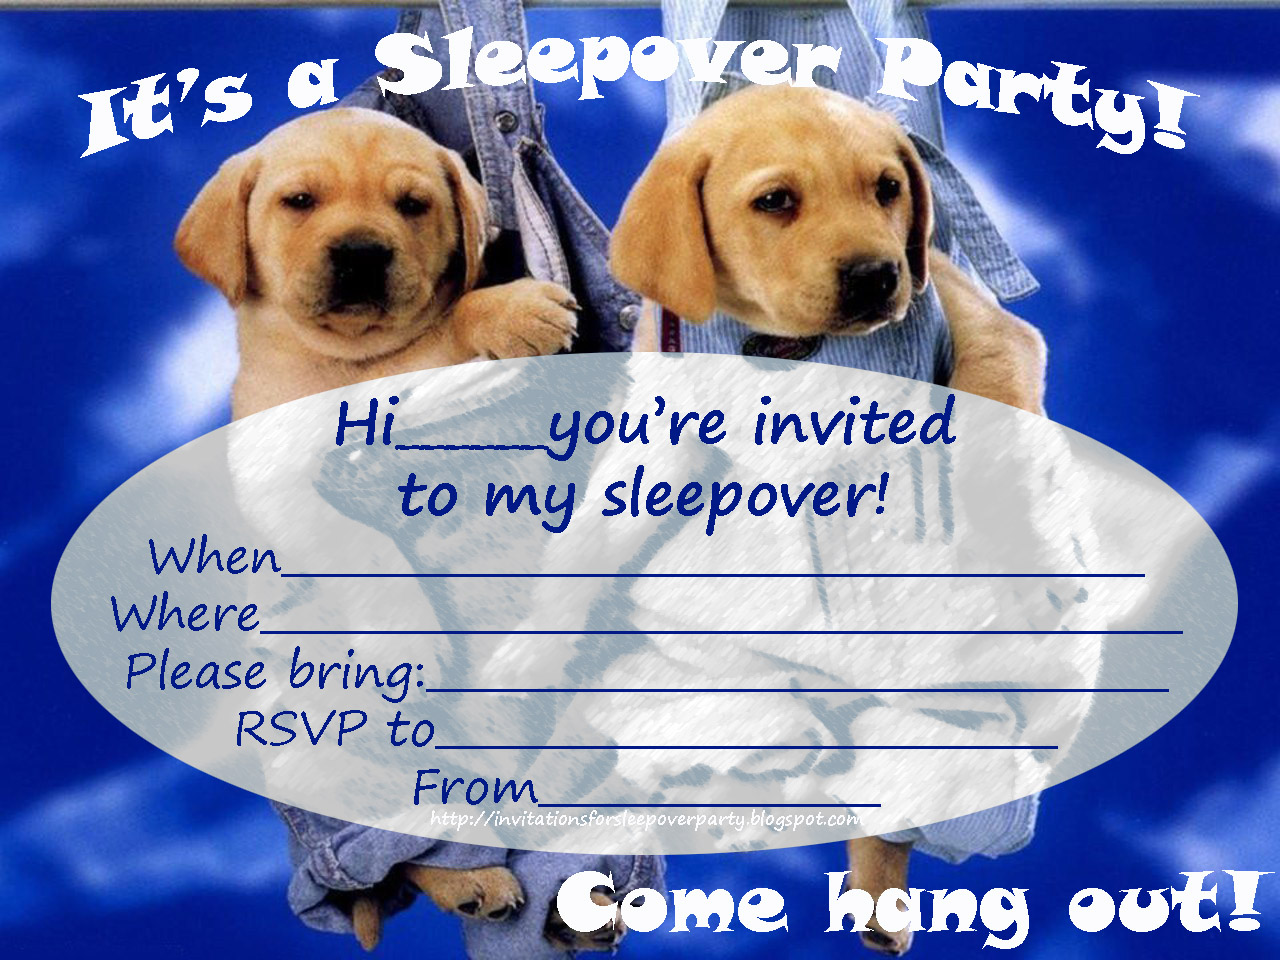 Invitations for sleepover party monicamarmolfo Image collections